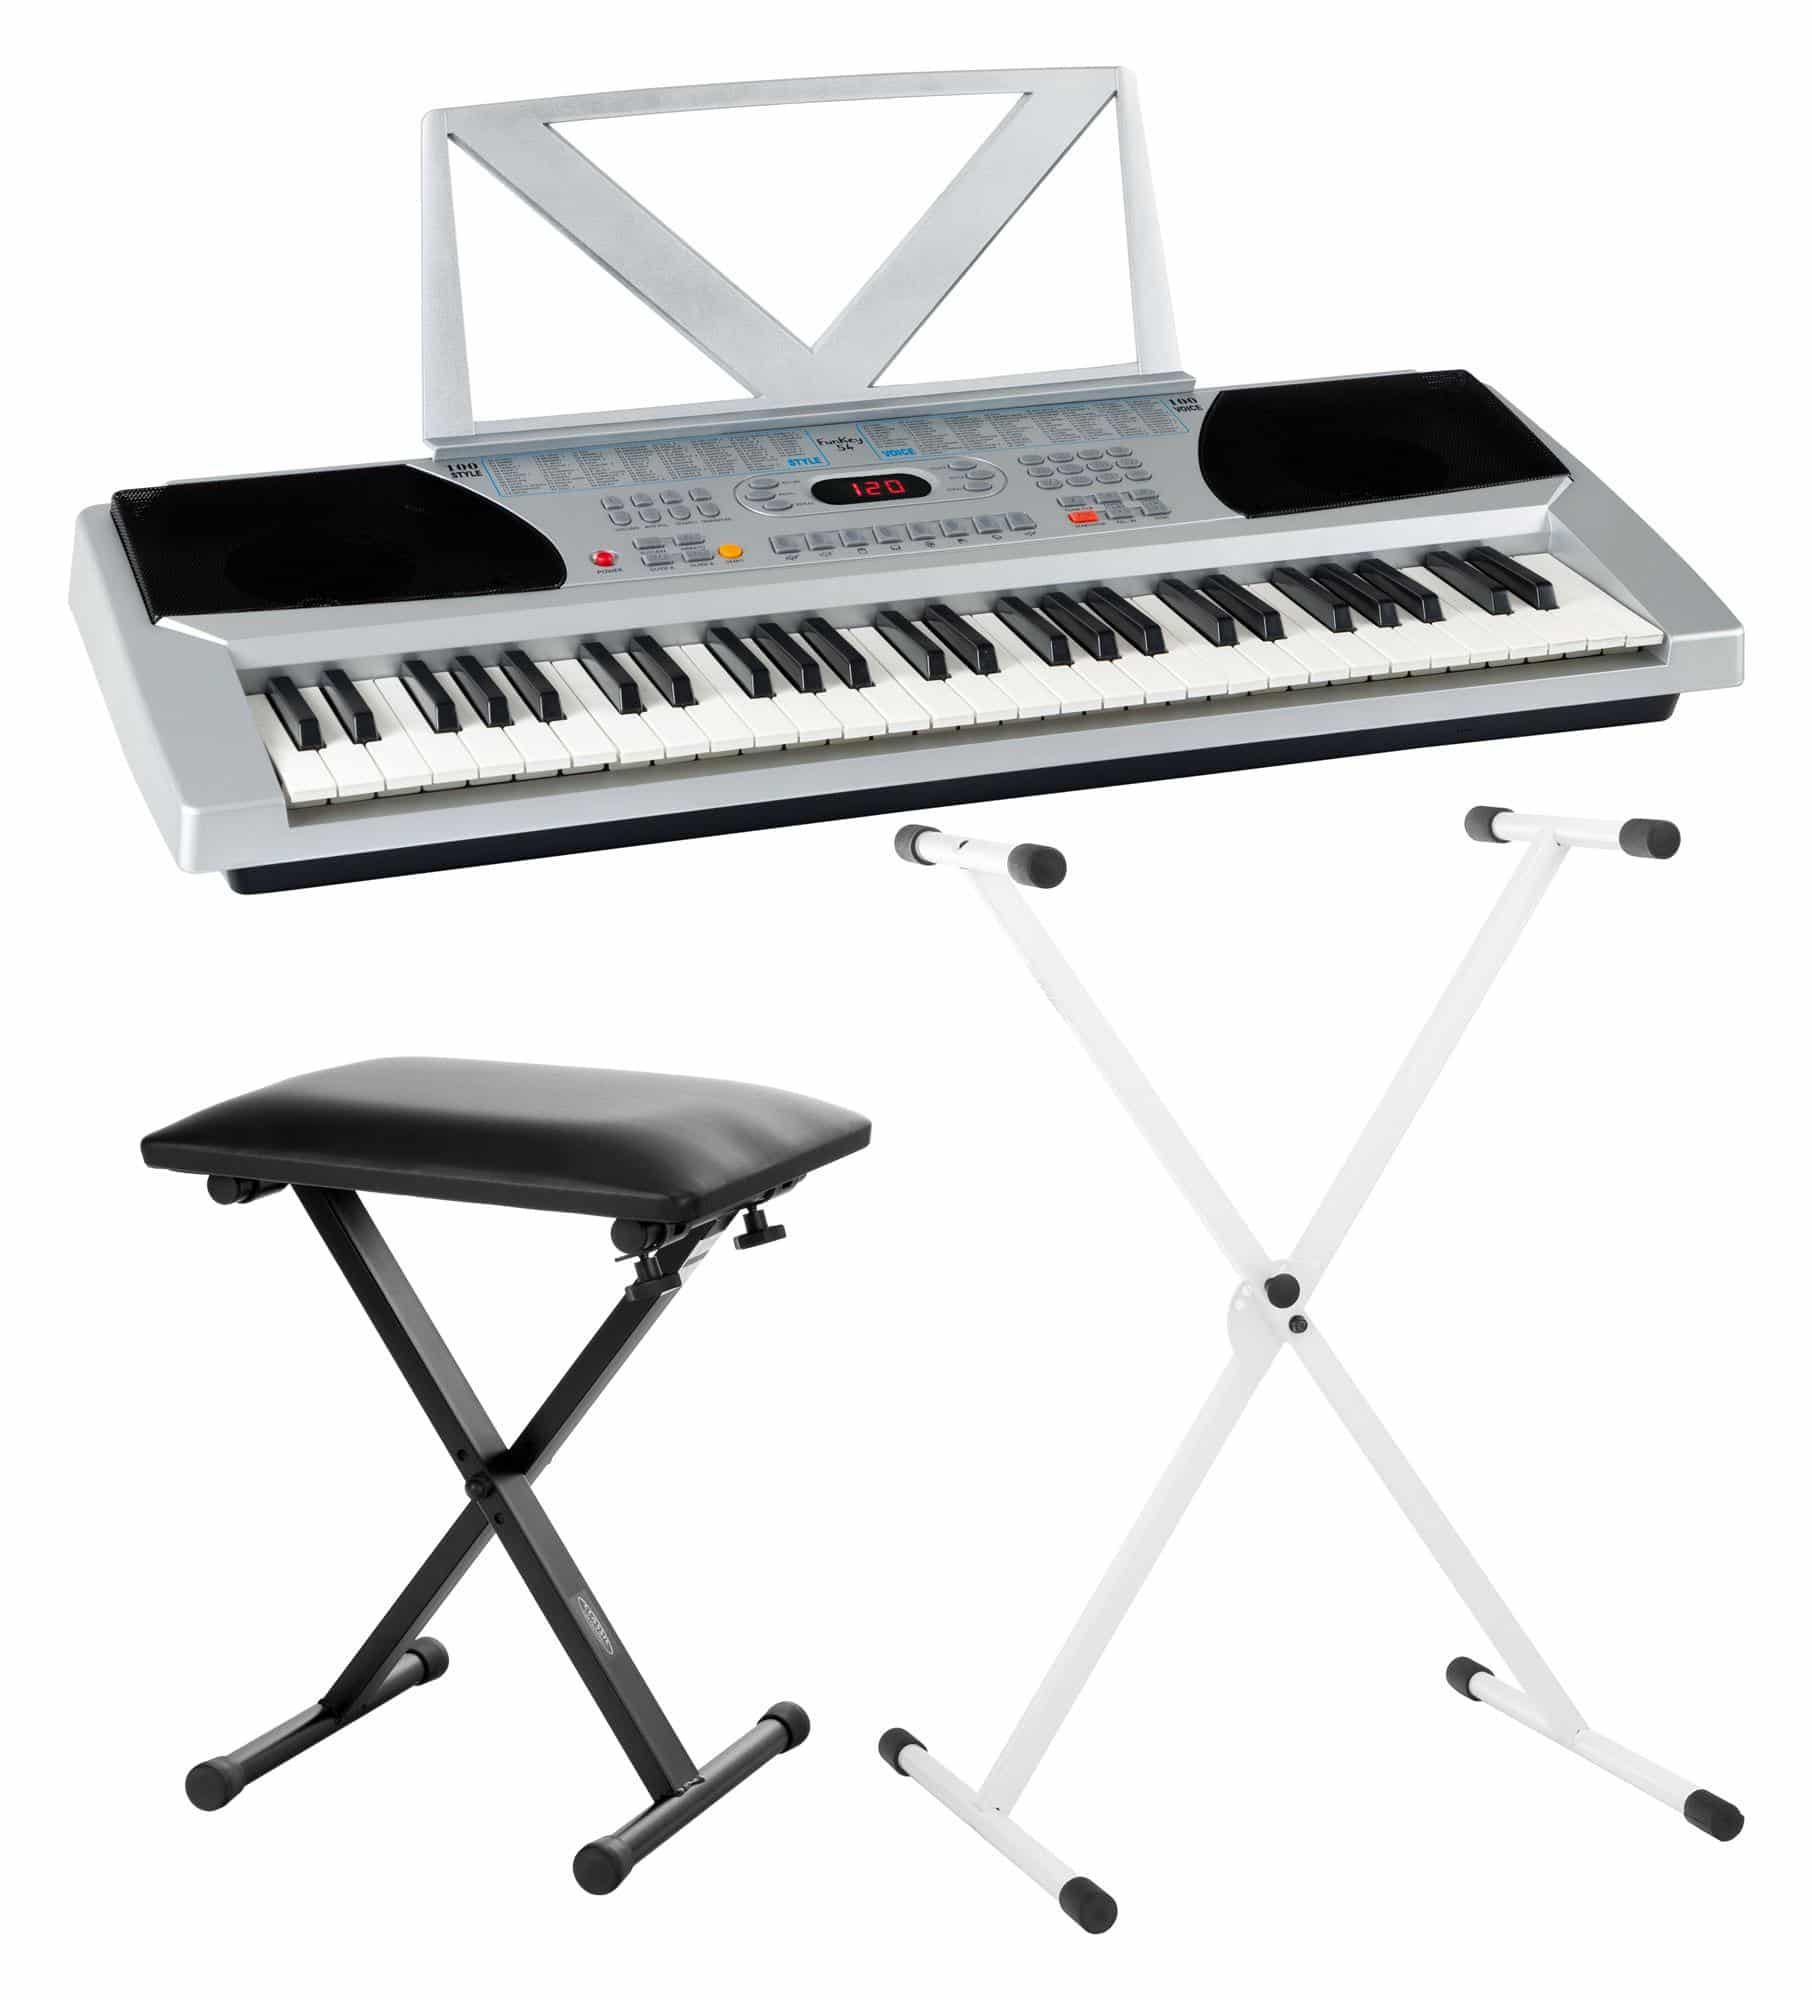 Funkey 54 set incl keyboard keyboard stand silver bench Keyboard stand and bench